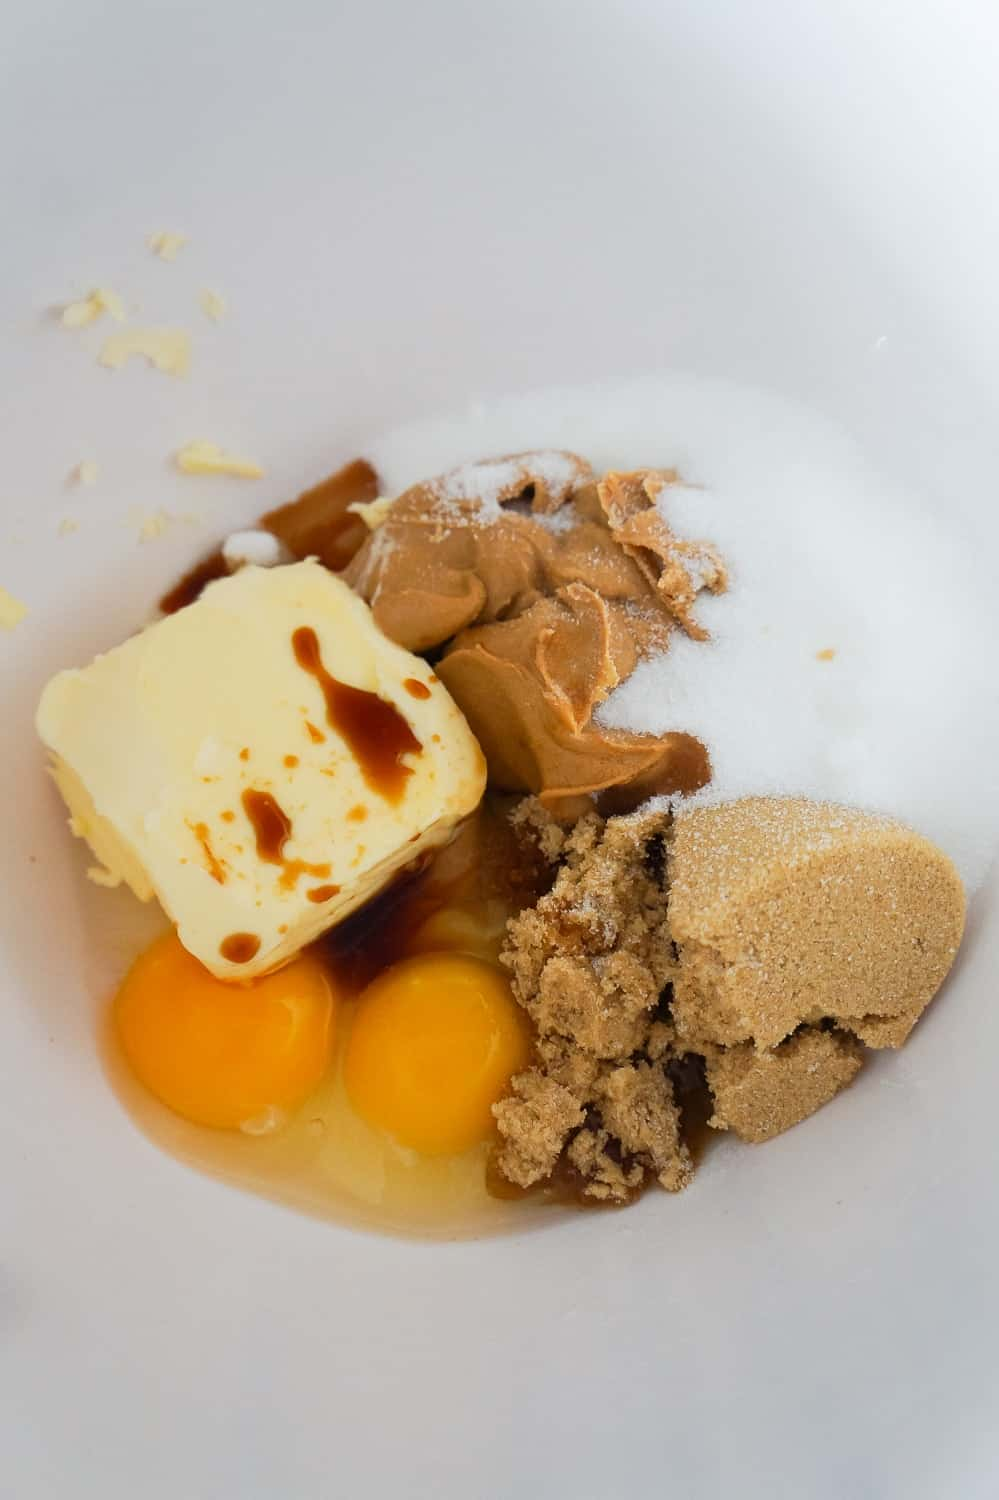 butter, peanut butter, eggs, brown sugar and white sugar in a mixing bowl